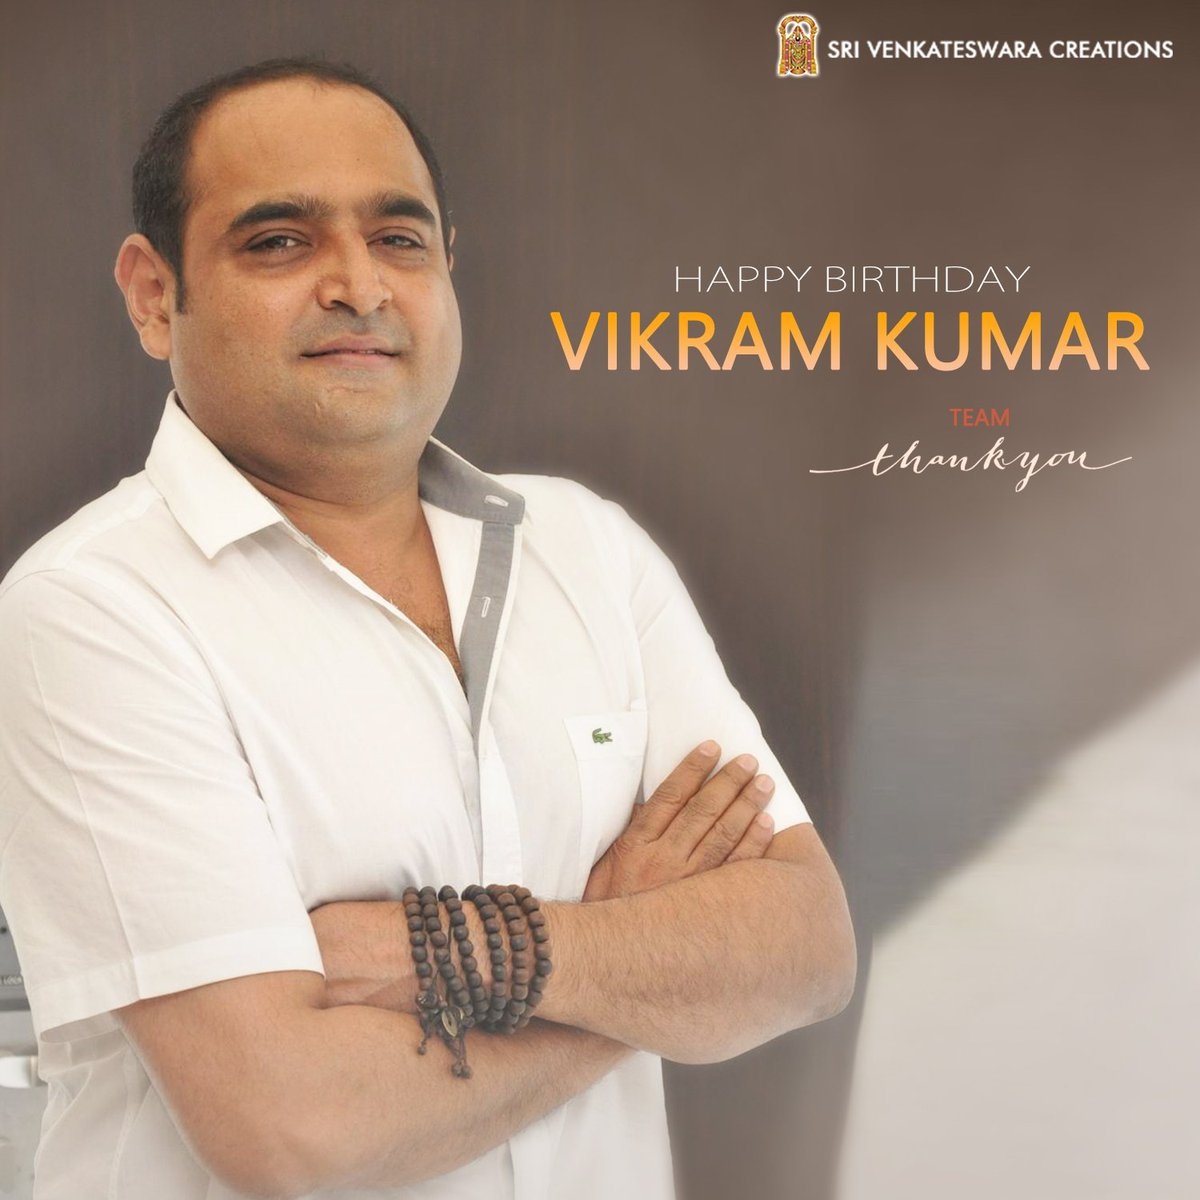 Wishing our Director @Vikram_K_Kumar, a very happy birthday - Team #ThankYouMovie https://t.co/c1ITJfb2In